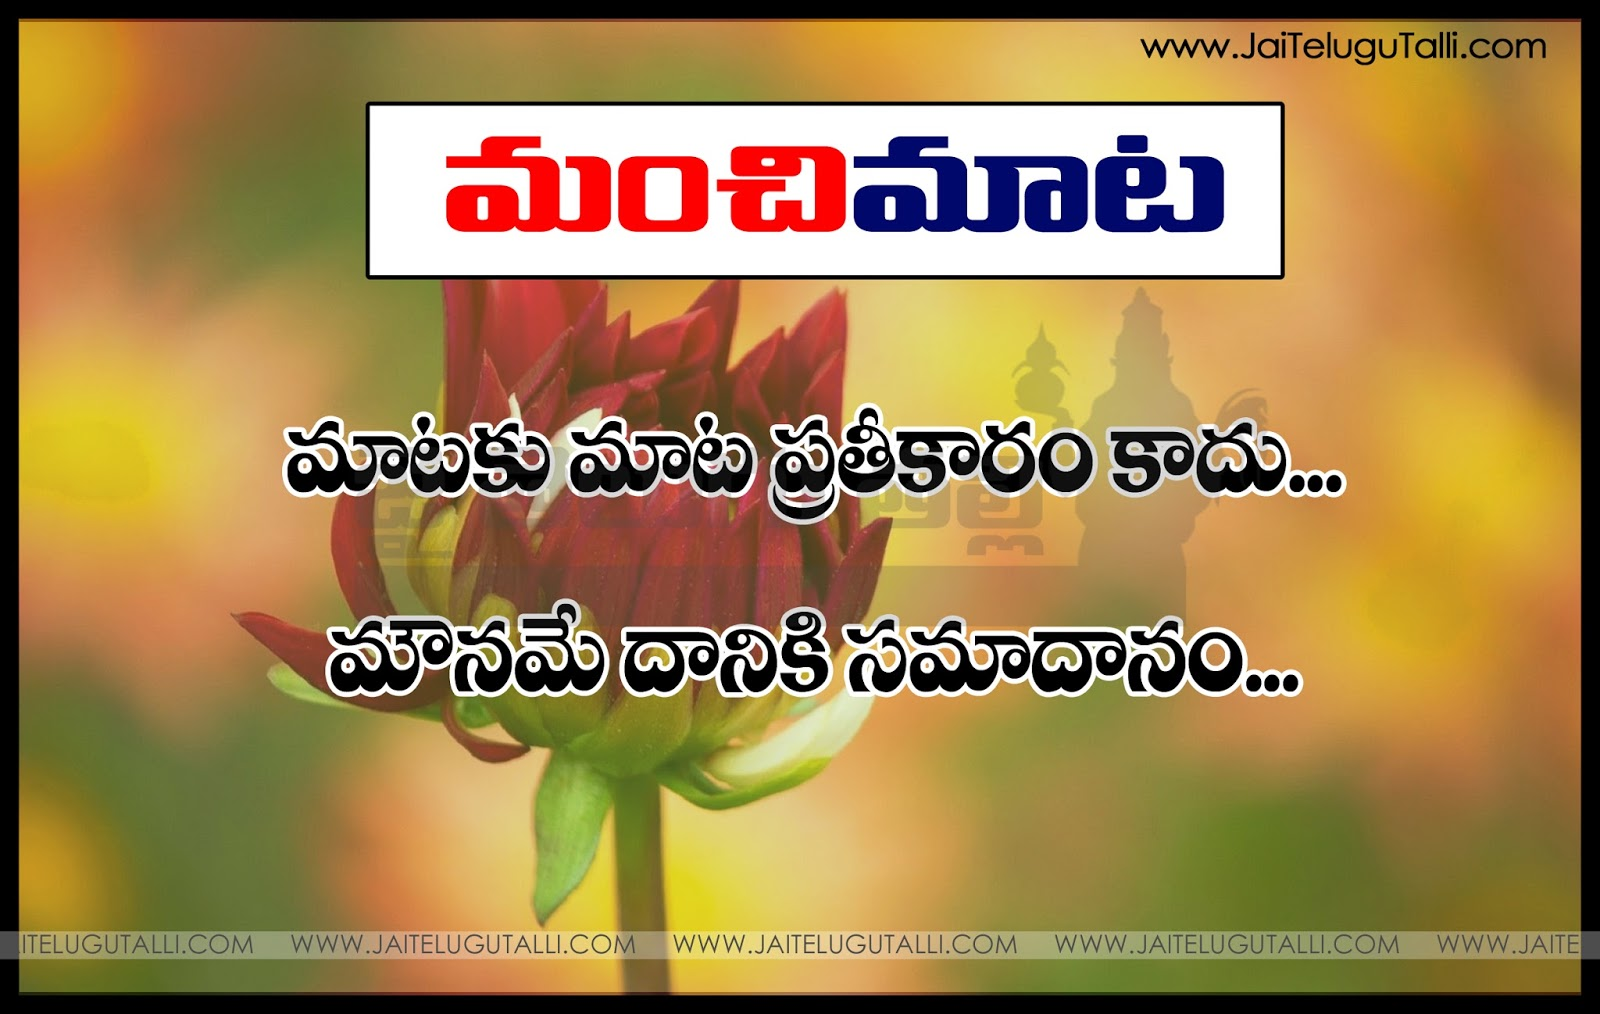 Inspirational Thoughts Telugu Manchi Matalu Golen Words Images Inspirational Thoughts